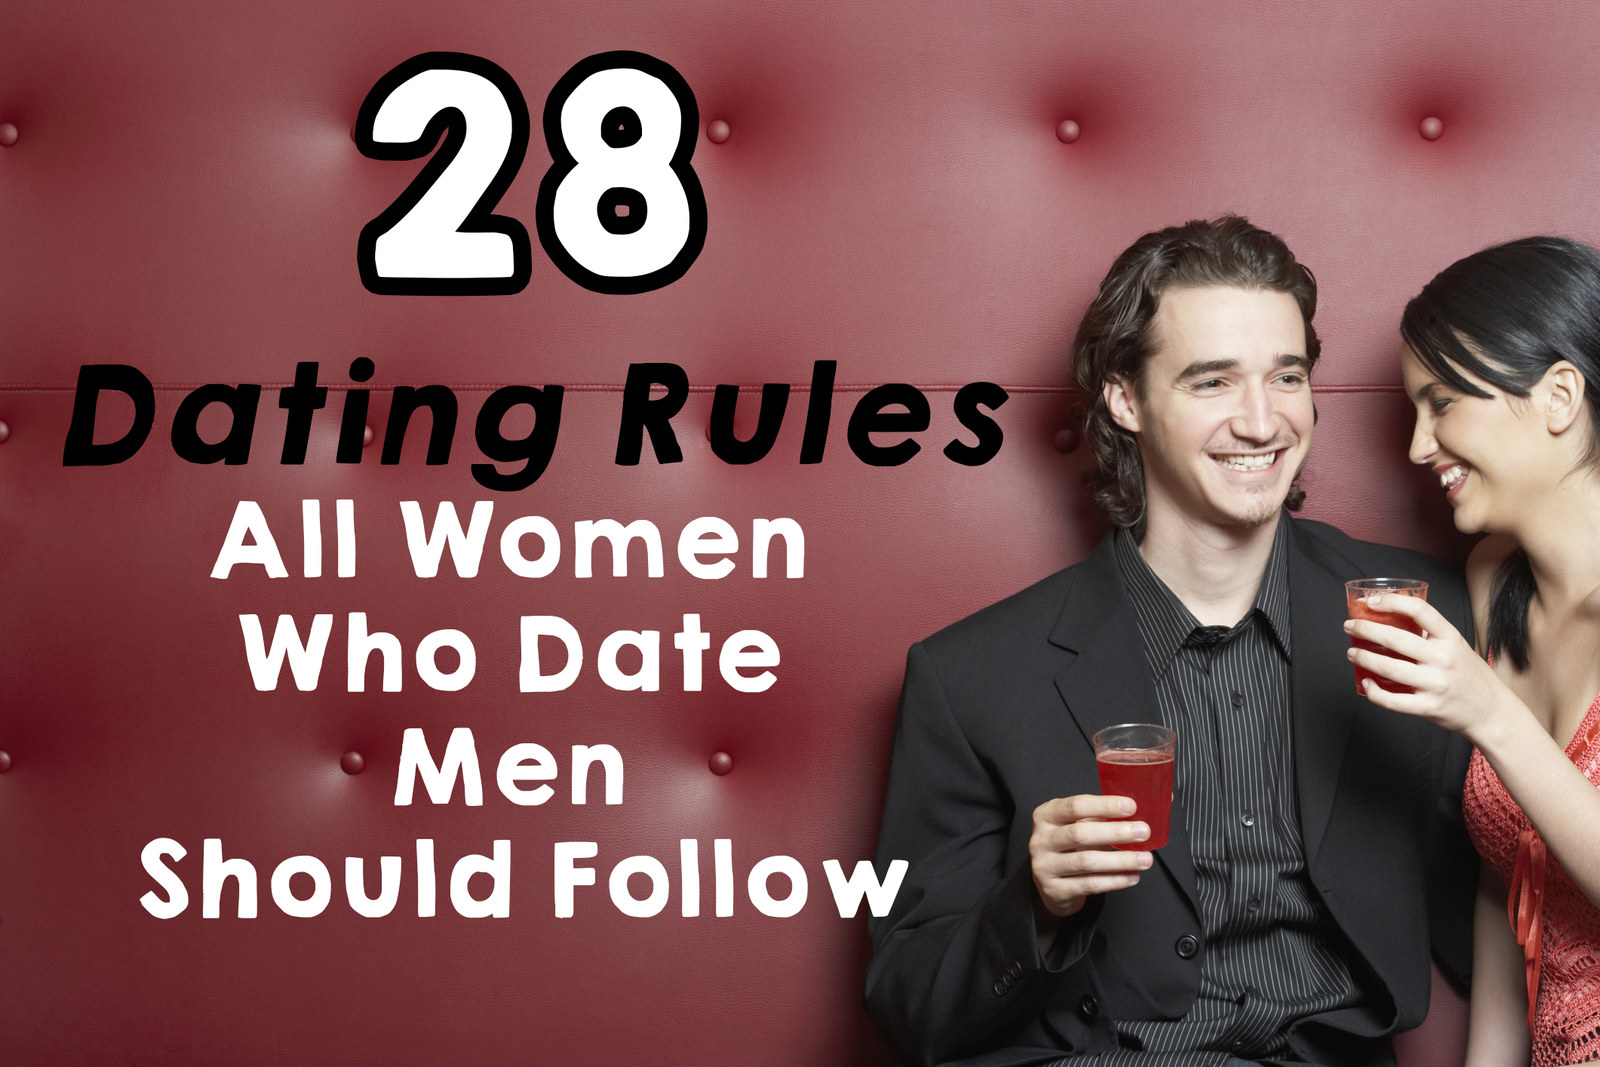 Buzzfeed rules of dating